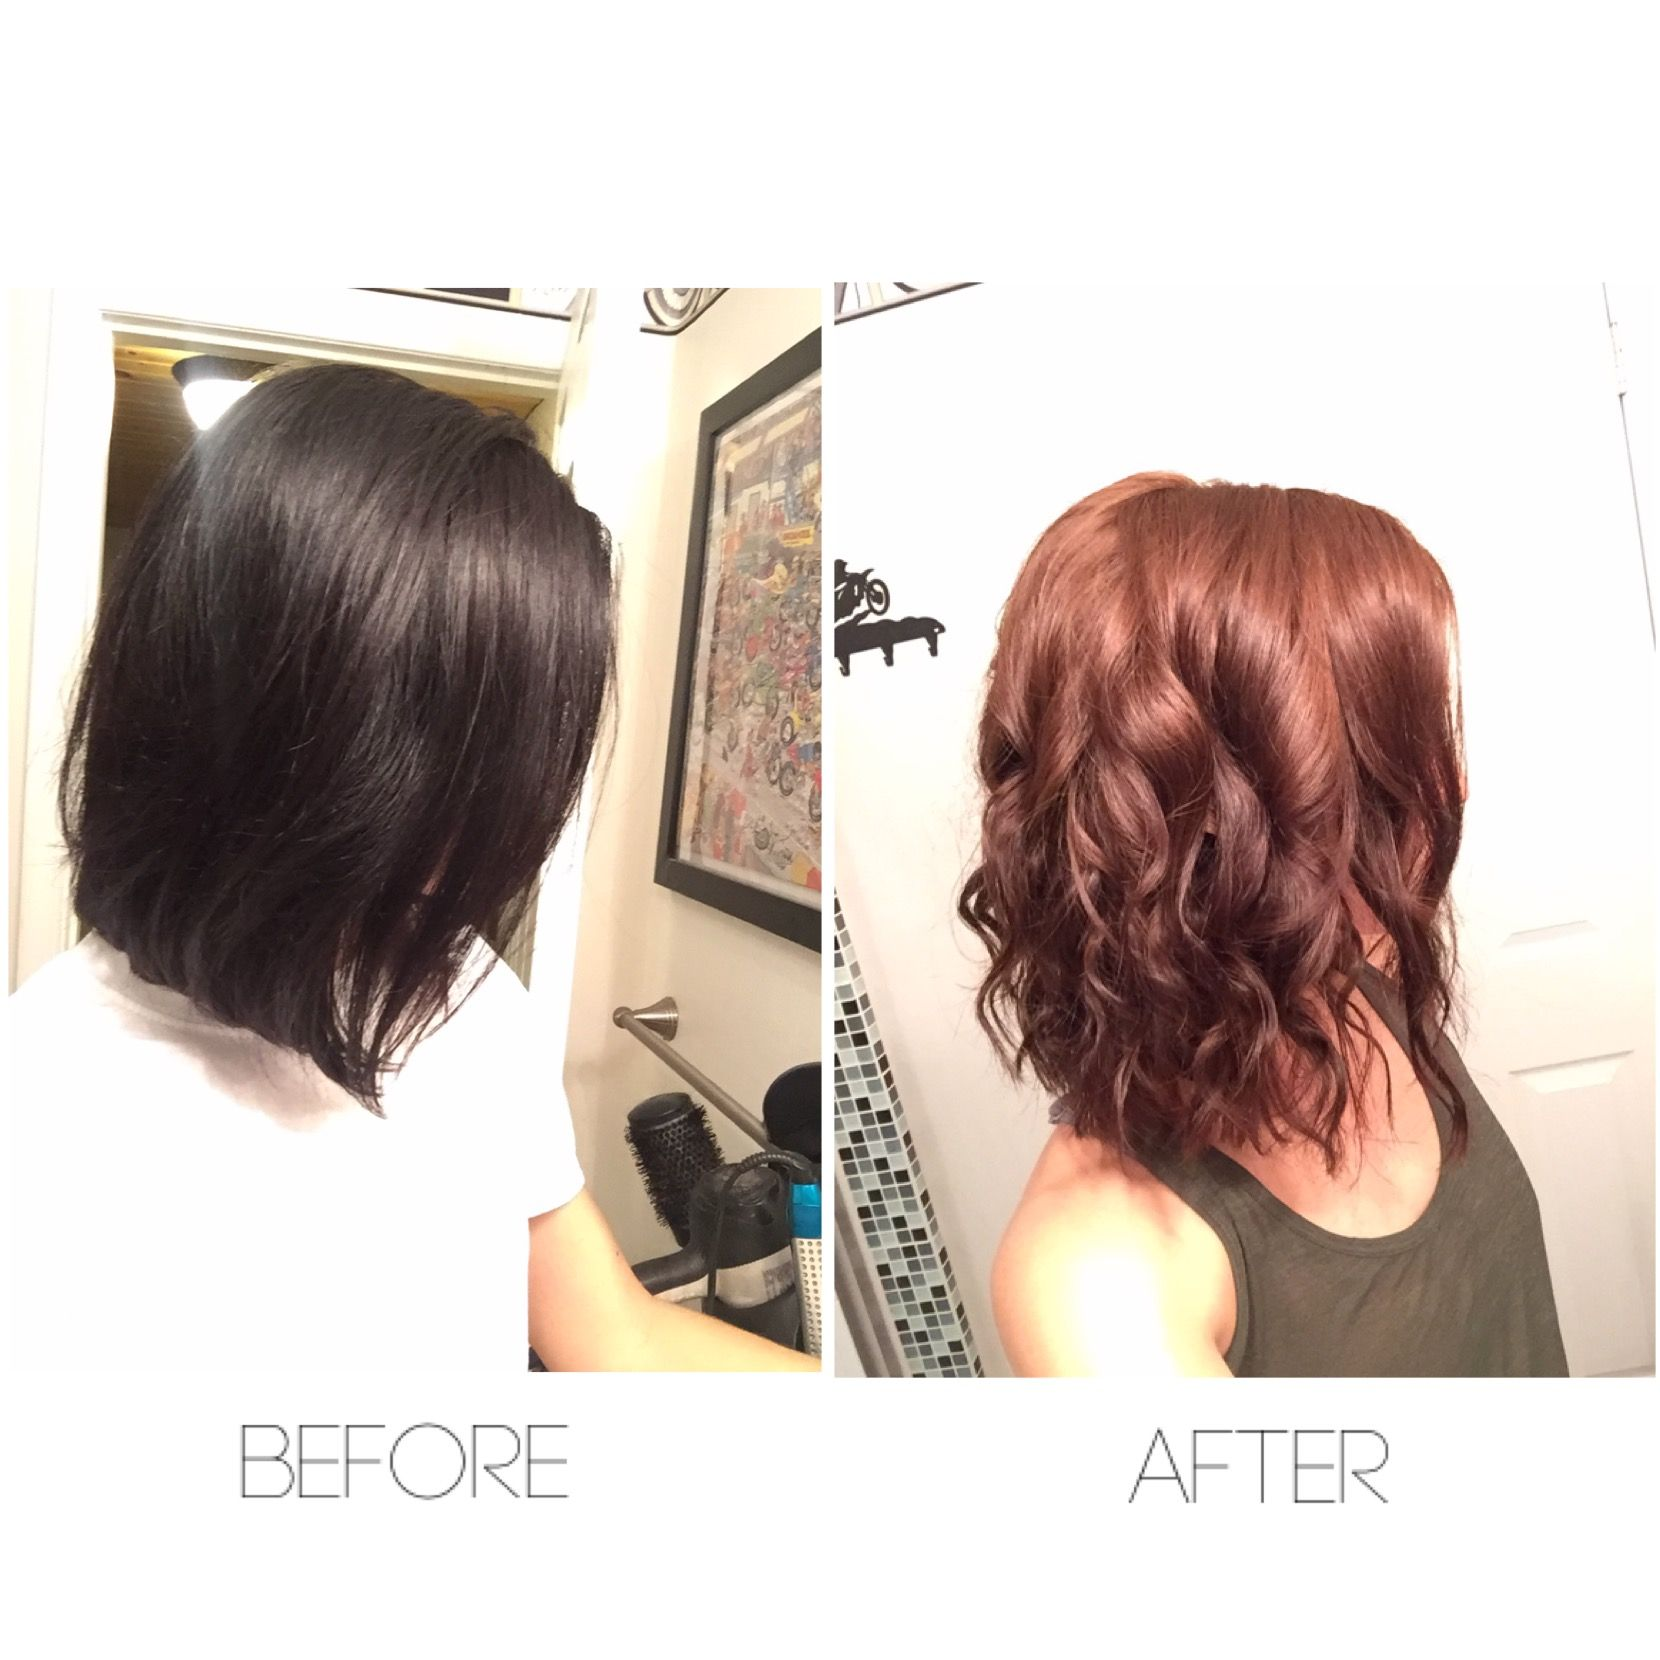 Used Color Oops Hair Color Remover To Strip 8 Years Of Color Out